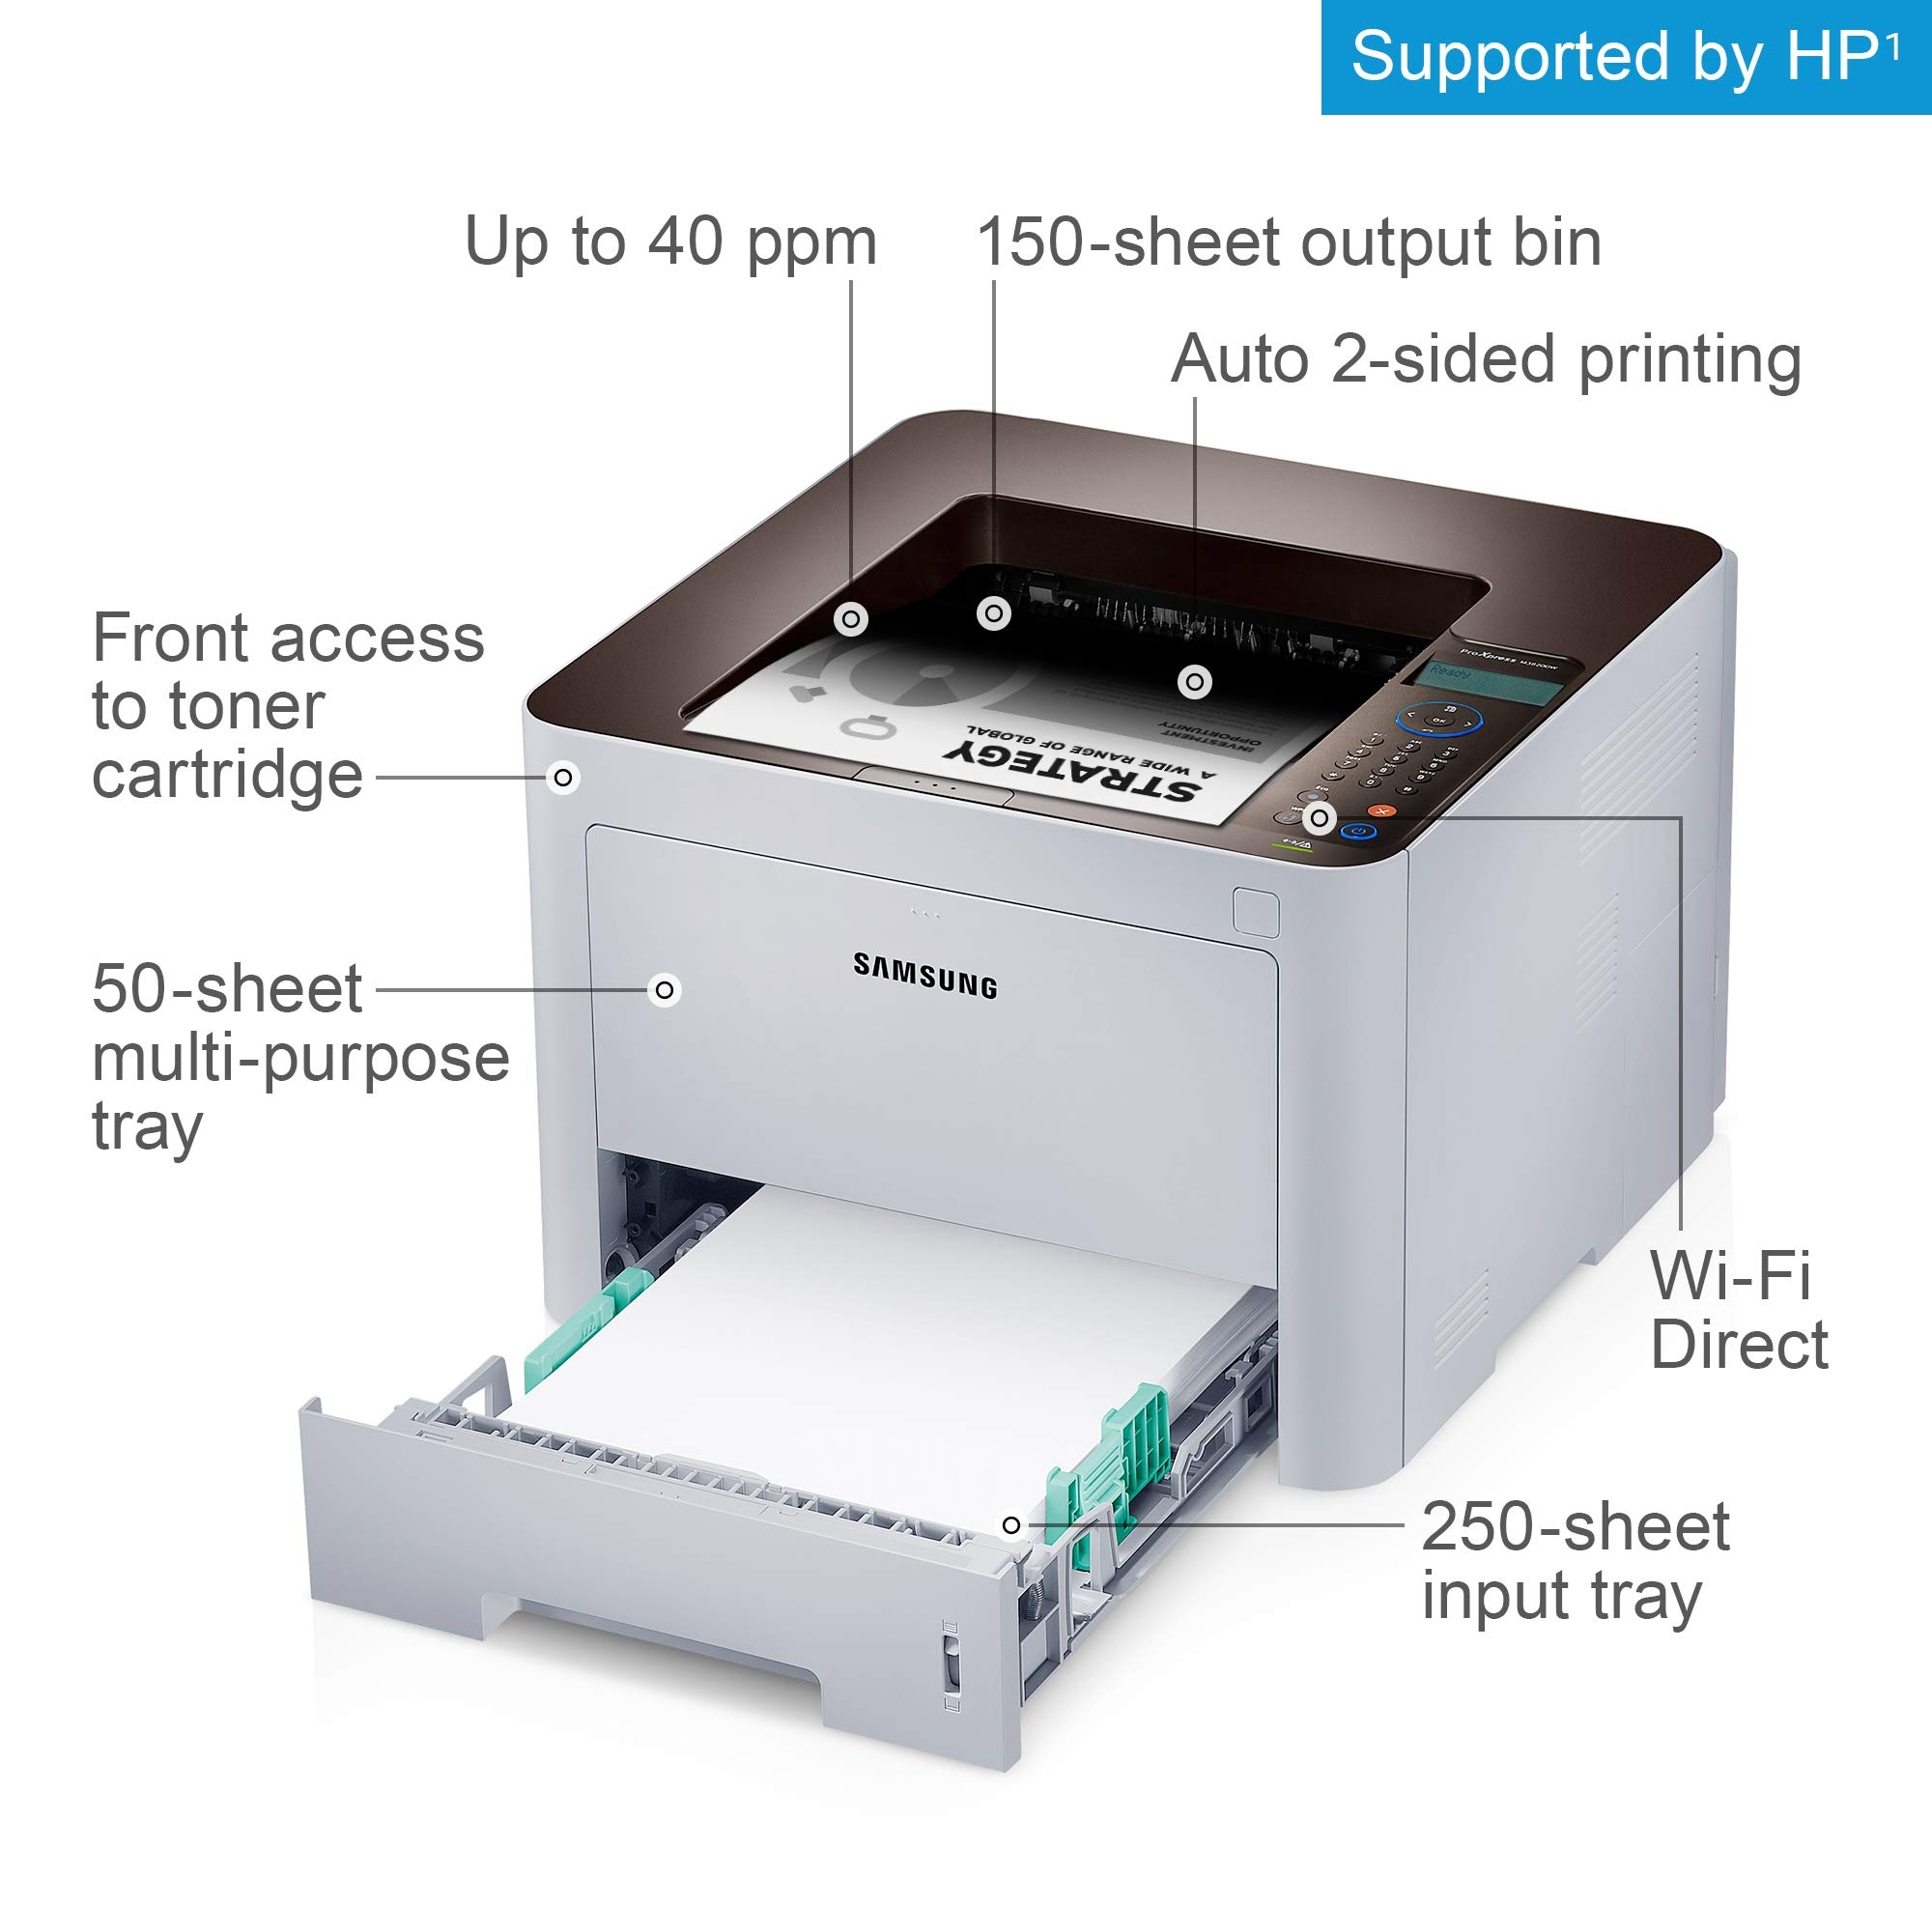 Samsung ProXpress M3820DW Wireless Monochrome Laser Printer with Mobile Connectivity, Duplex Printing, Print Security & Management Tools, Amazon Dash Replenishment Enabled (SS372C) by HP (Image #2)